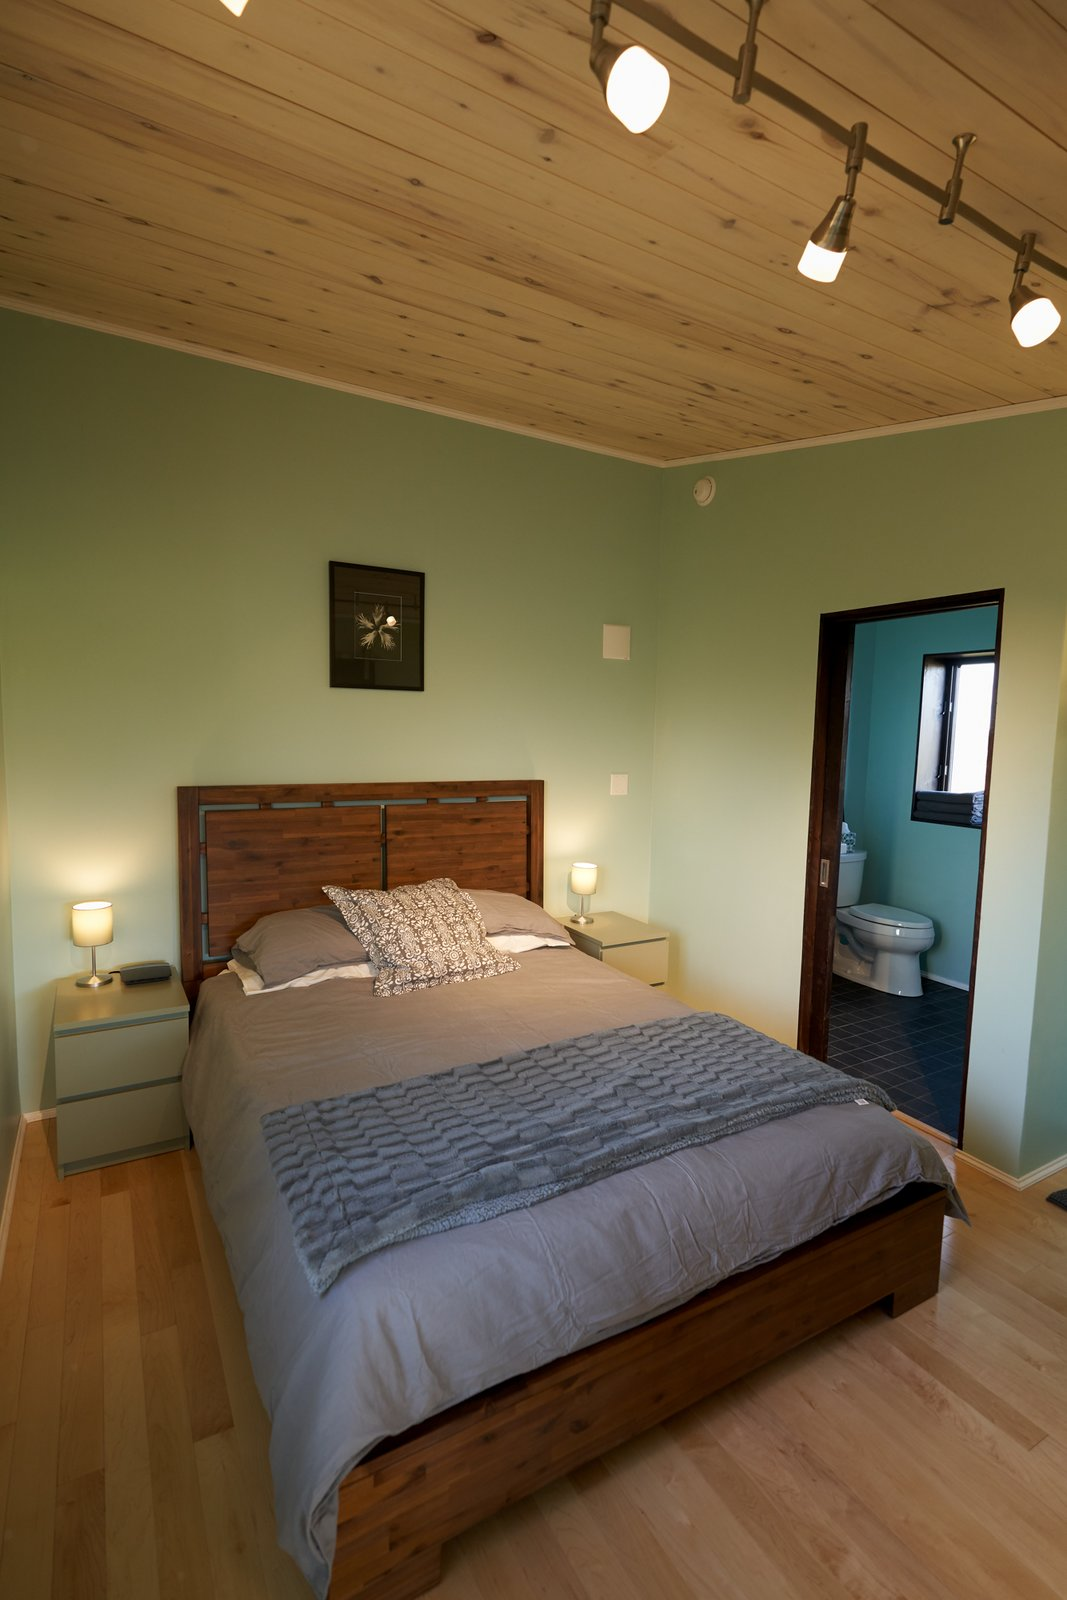 Bedroom, Bed, and Light Hardwood Floor  SkyNest by Joaquin Karcher